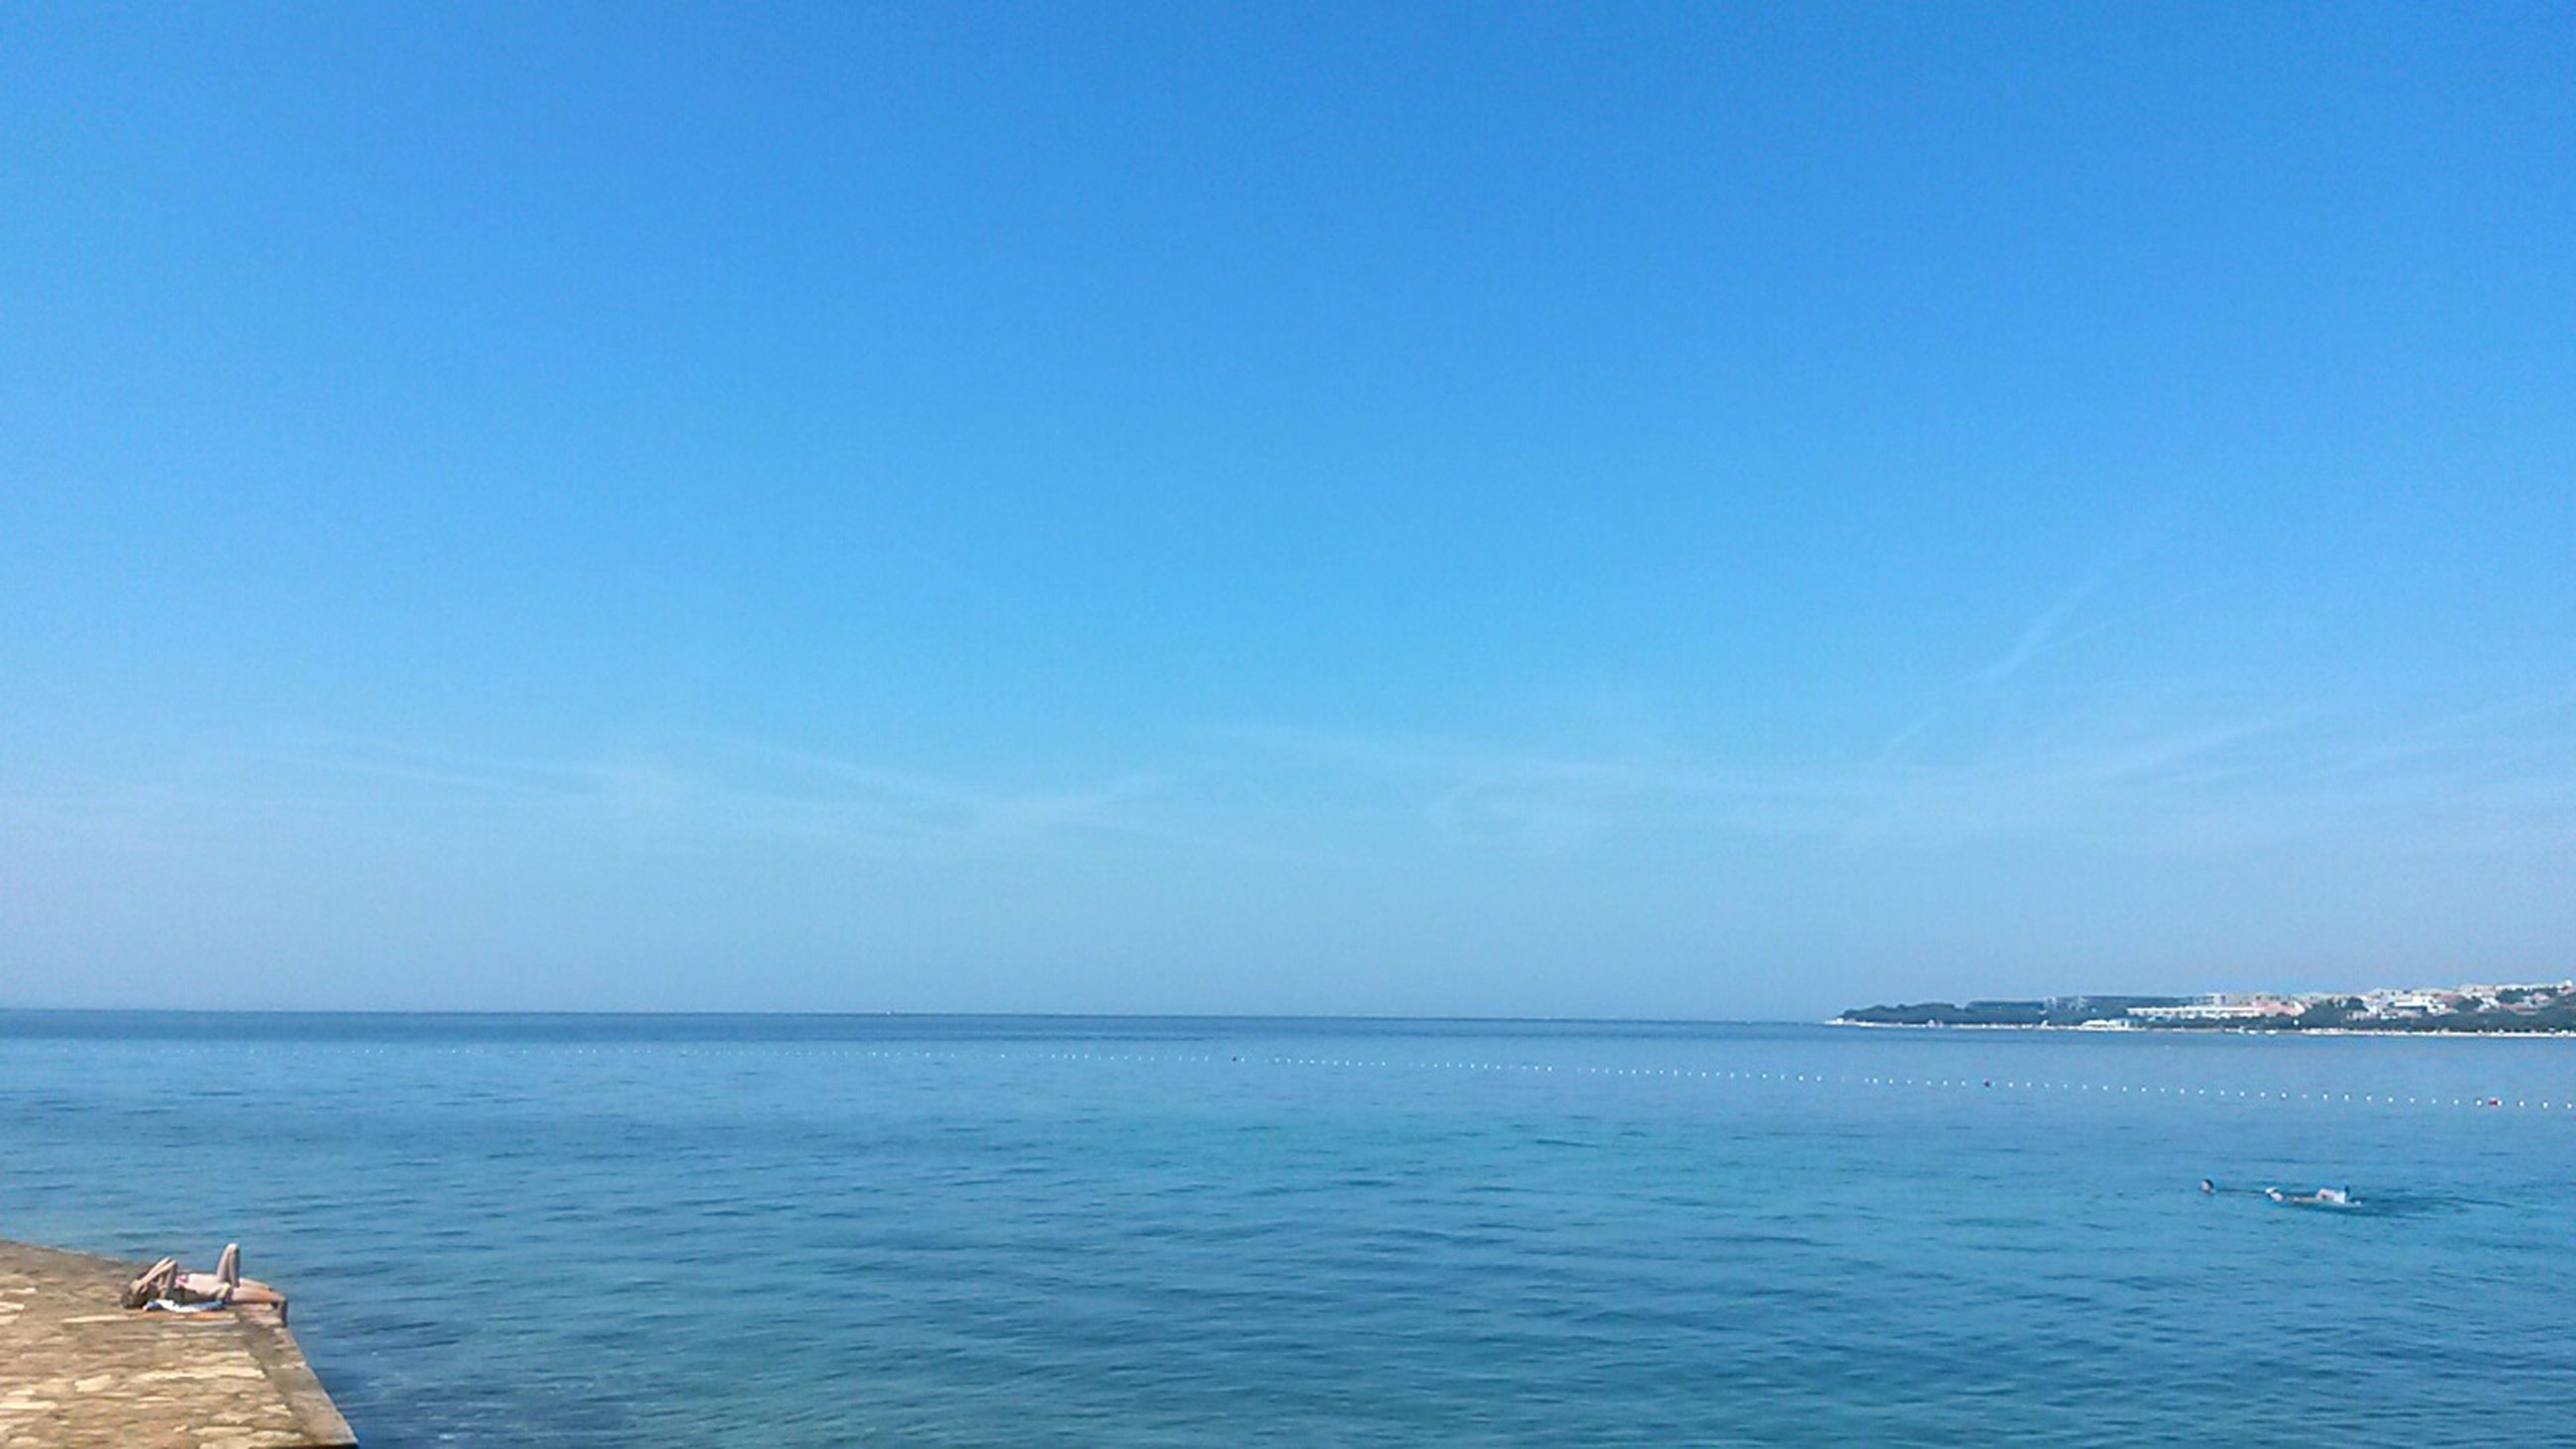 sea, water, blue, horizon over water, copy space, tranquil scene, tranquility, scenics, beauty in nature, clear sky, nature, sky, waterfront, idyllic, beach, seascape, outdoors, day, calm, nautical vessel